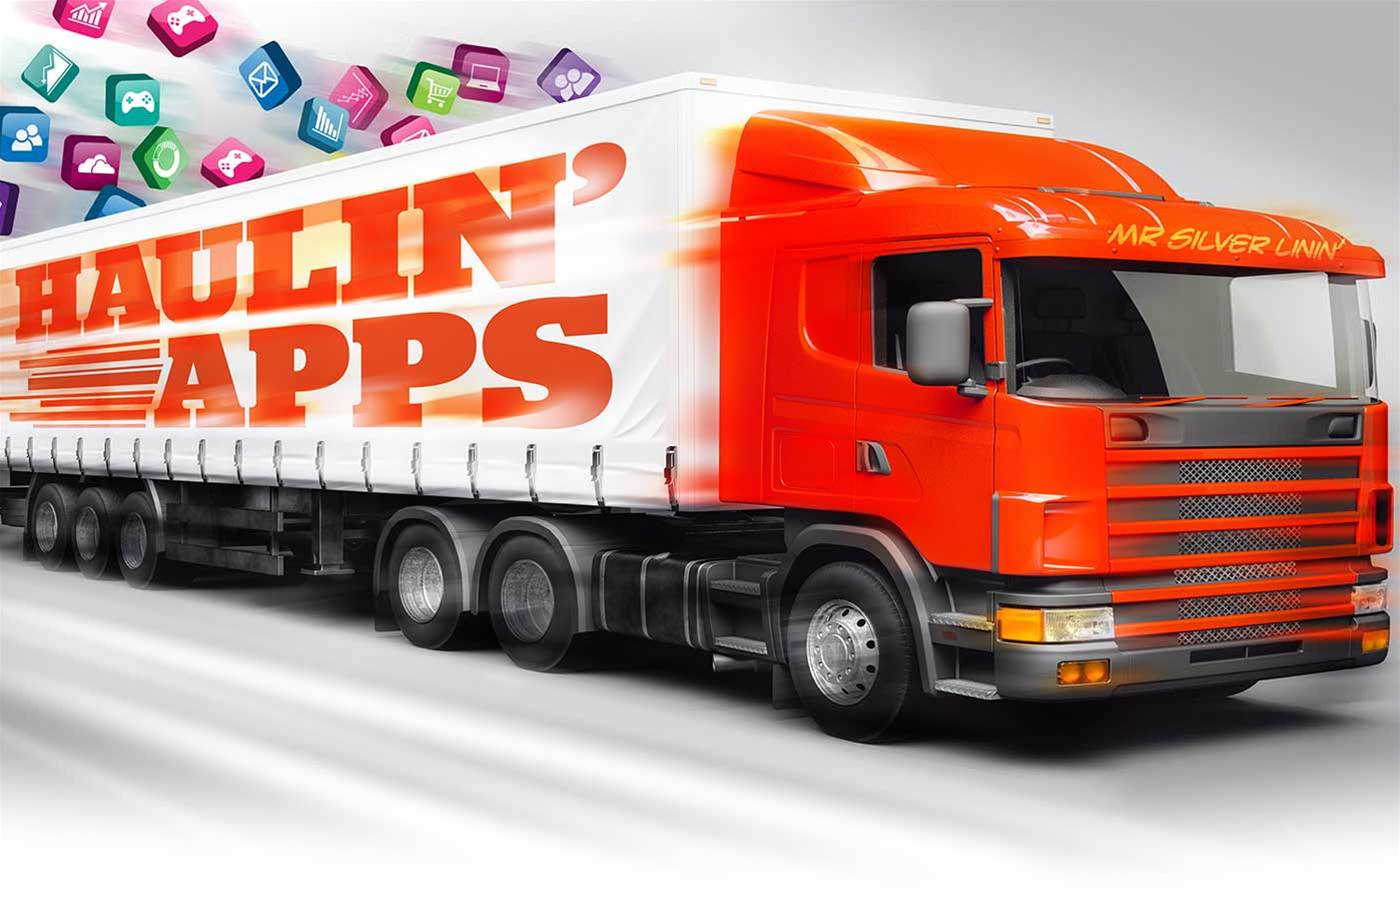 Haulin' apps: Why disties are going nuts for cloud